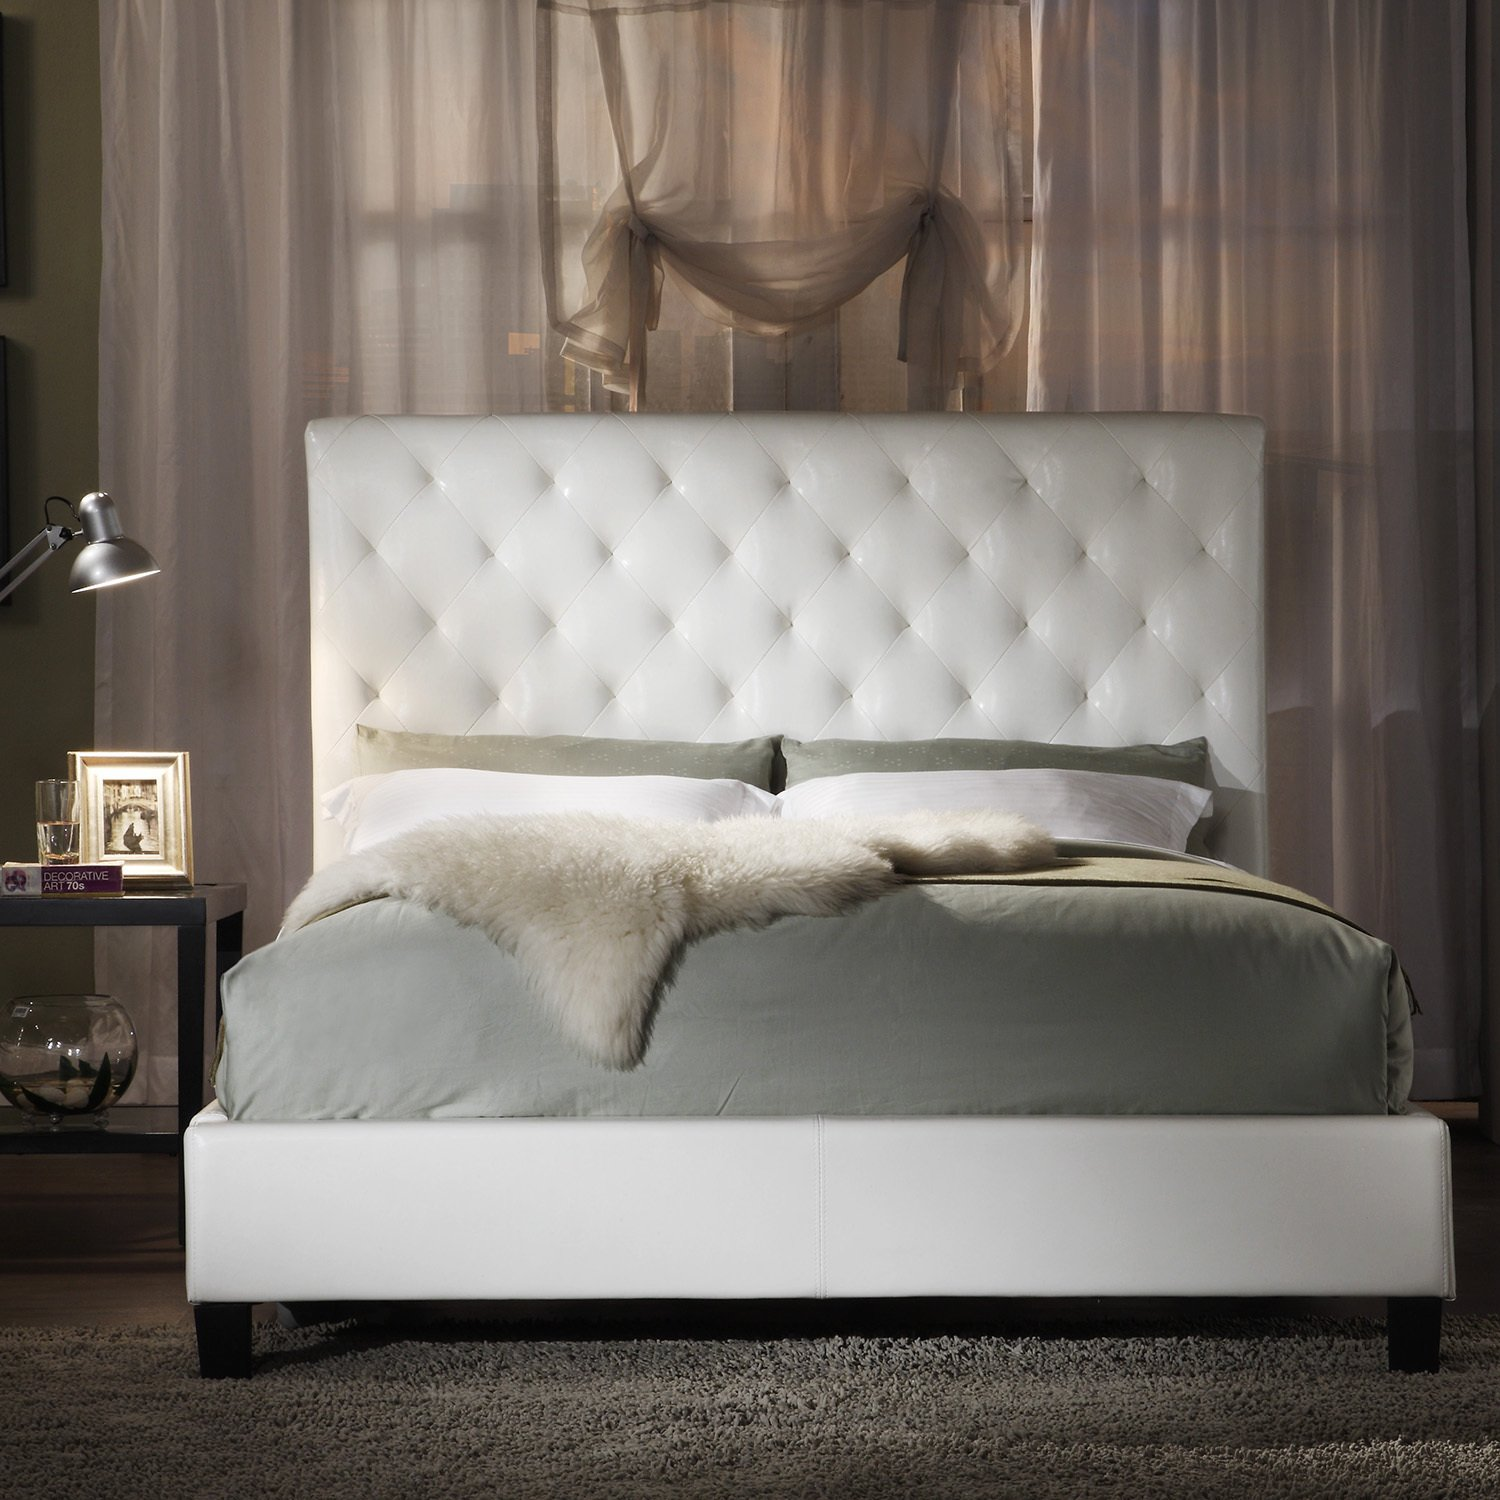 amazoncom metro shop tribecca home sophie white bonded leather tuftedqueensized upholstered platform bedsophie queensize tufted white vinylplatform . amazoncom metro shop tribecca home sophie white bonded leather